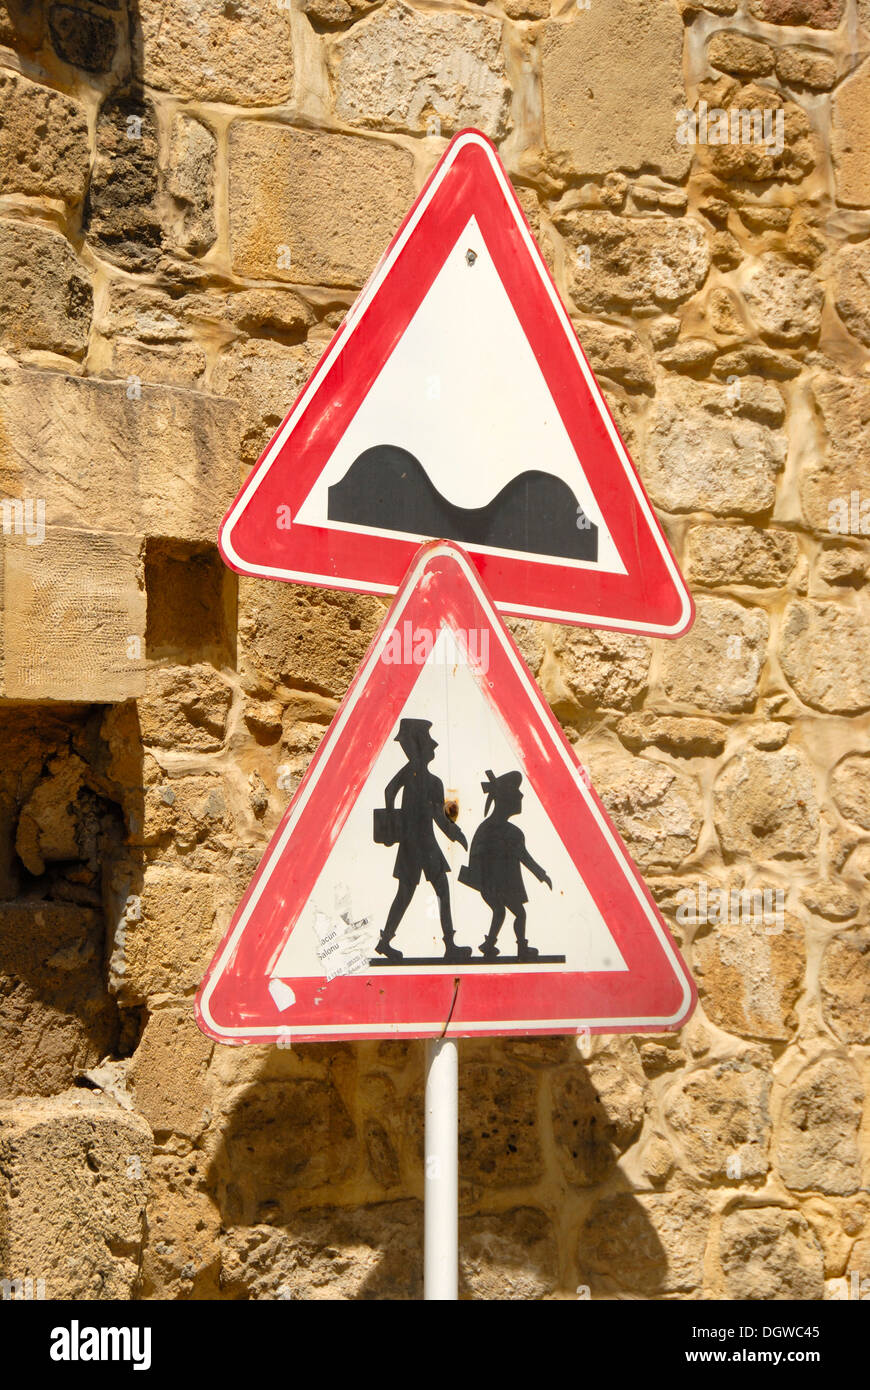 Two traffic signs, caution uneven road, caution pedestrians, Nicosia, Lefkosa, Turkish Republic of Northern Cyprus, - Stock Image